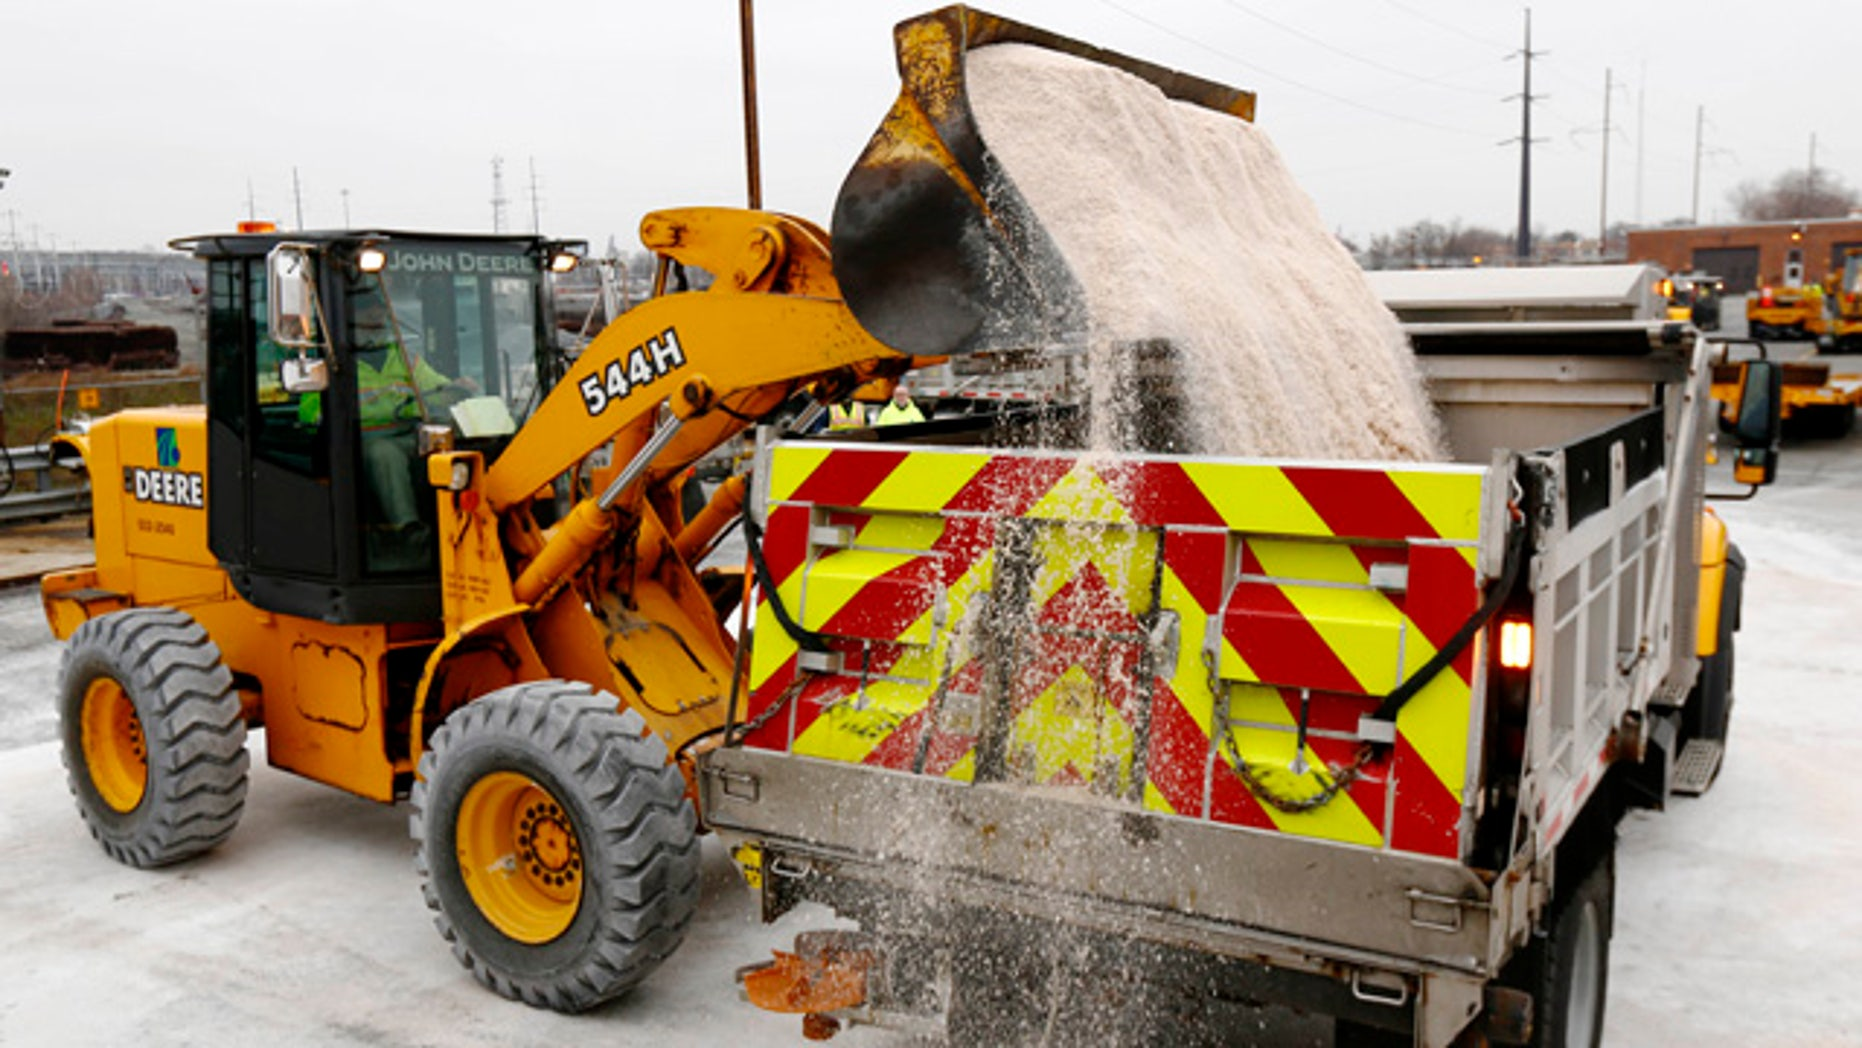 Jan. 2, 2014: A worker at the Pennsylvania Department of Transportation facility dumps salt into a truck as they make preparations for an expected winter storm.